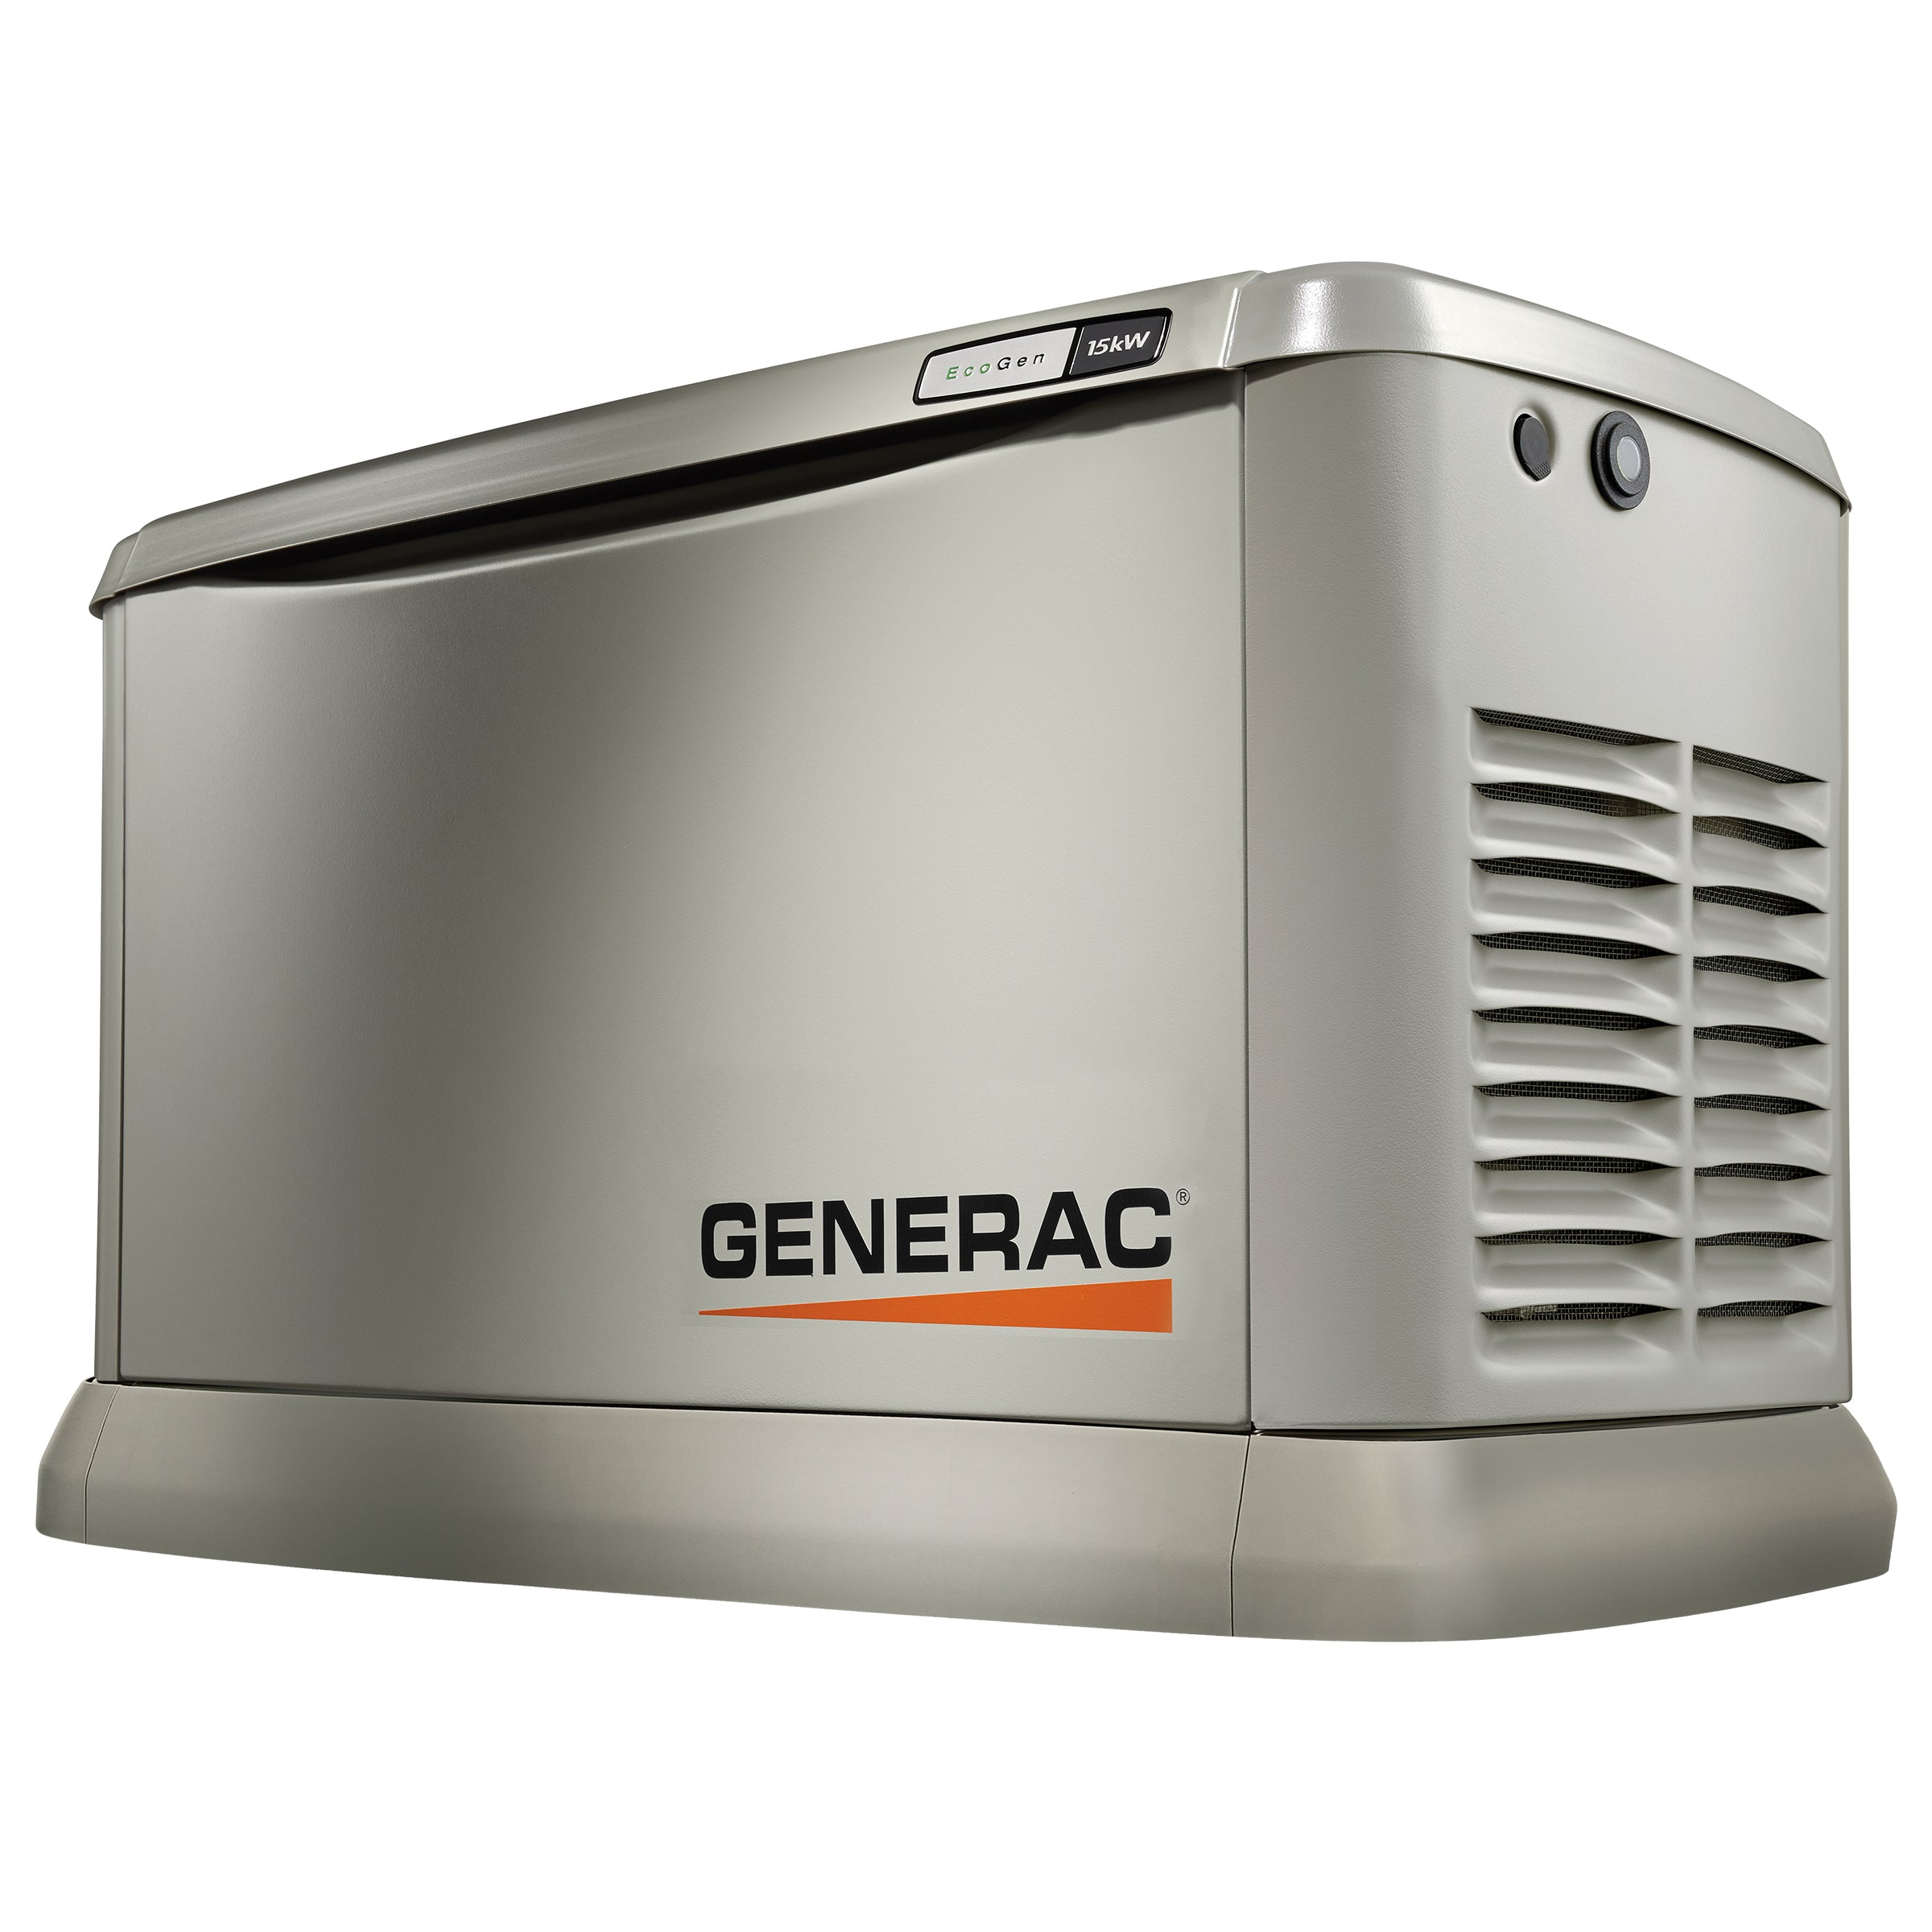 7034 Generac EcoGen 15kW Aluminum Air Cooled Standby Power